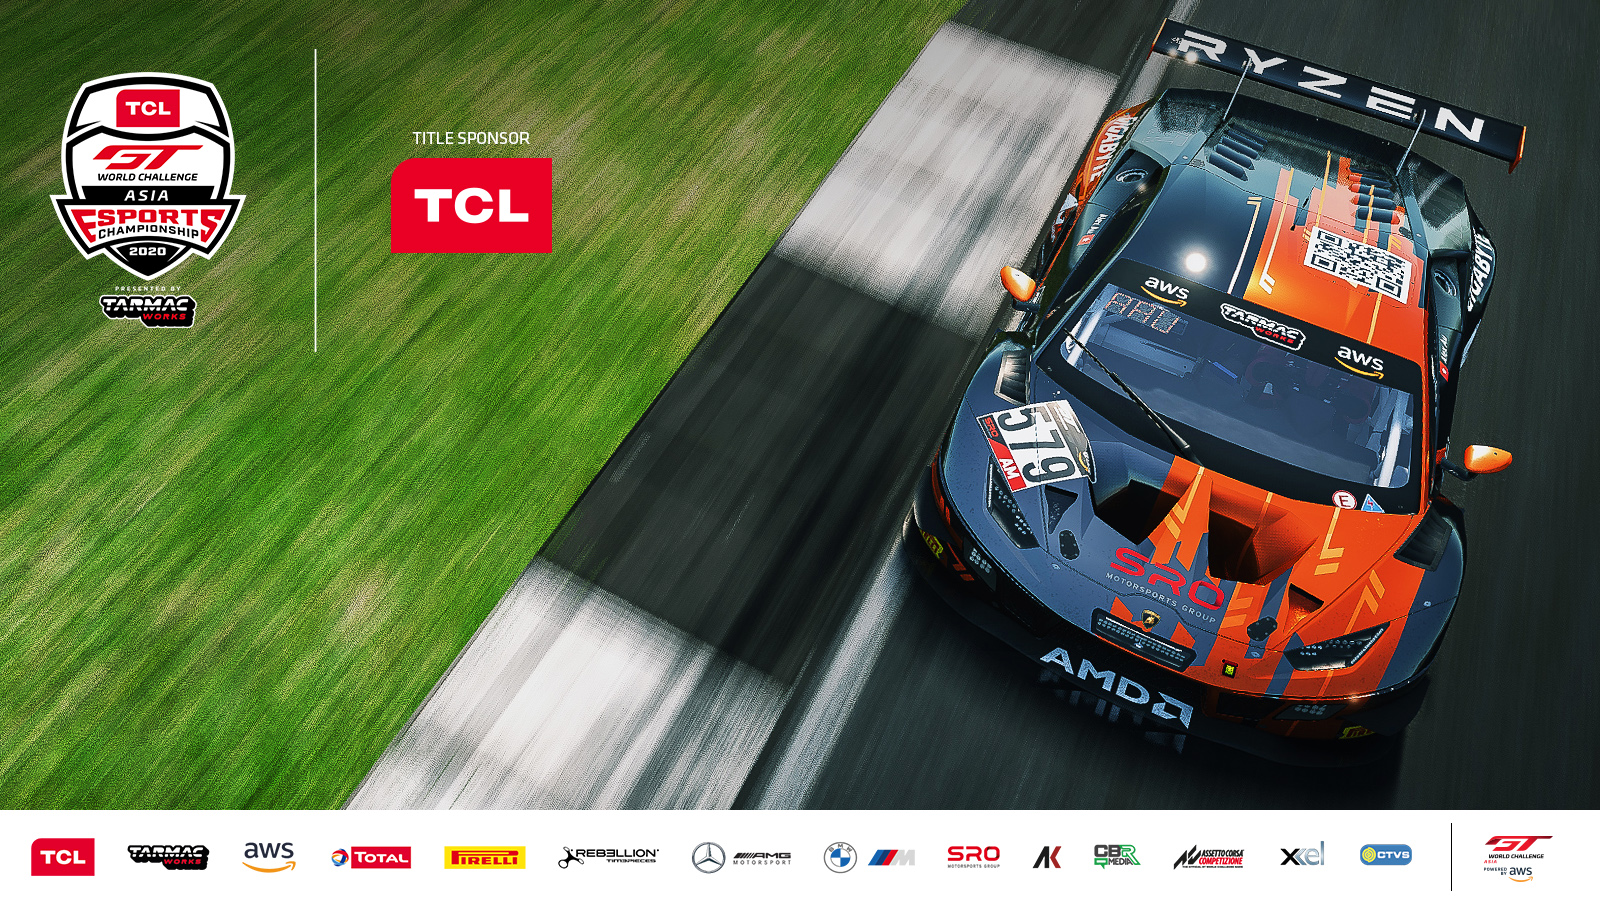 TCL becomes title sponsor of GT World Challenge Asia Esports Presented by Tarmac Works